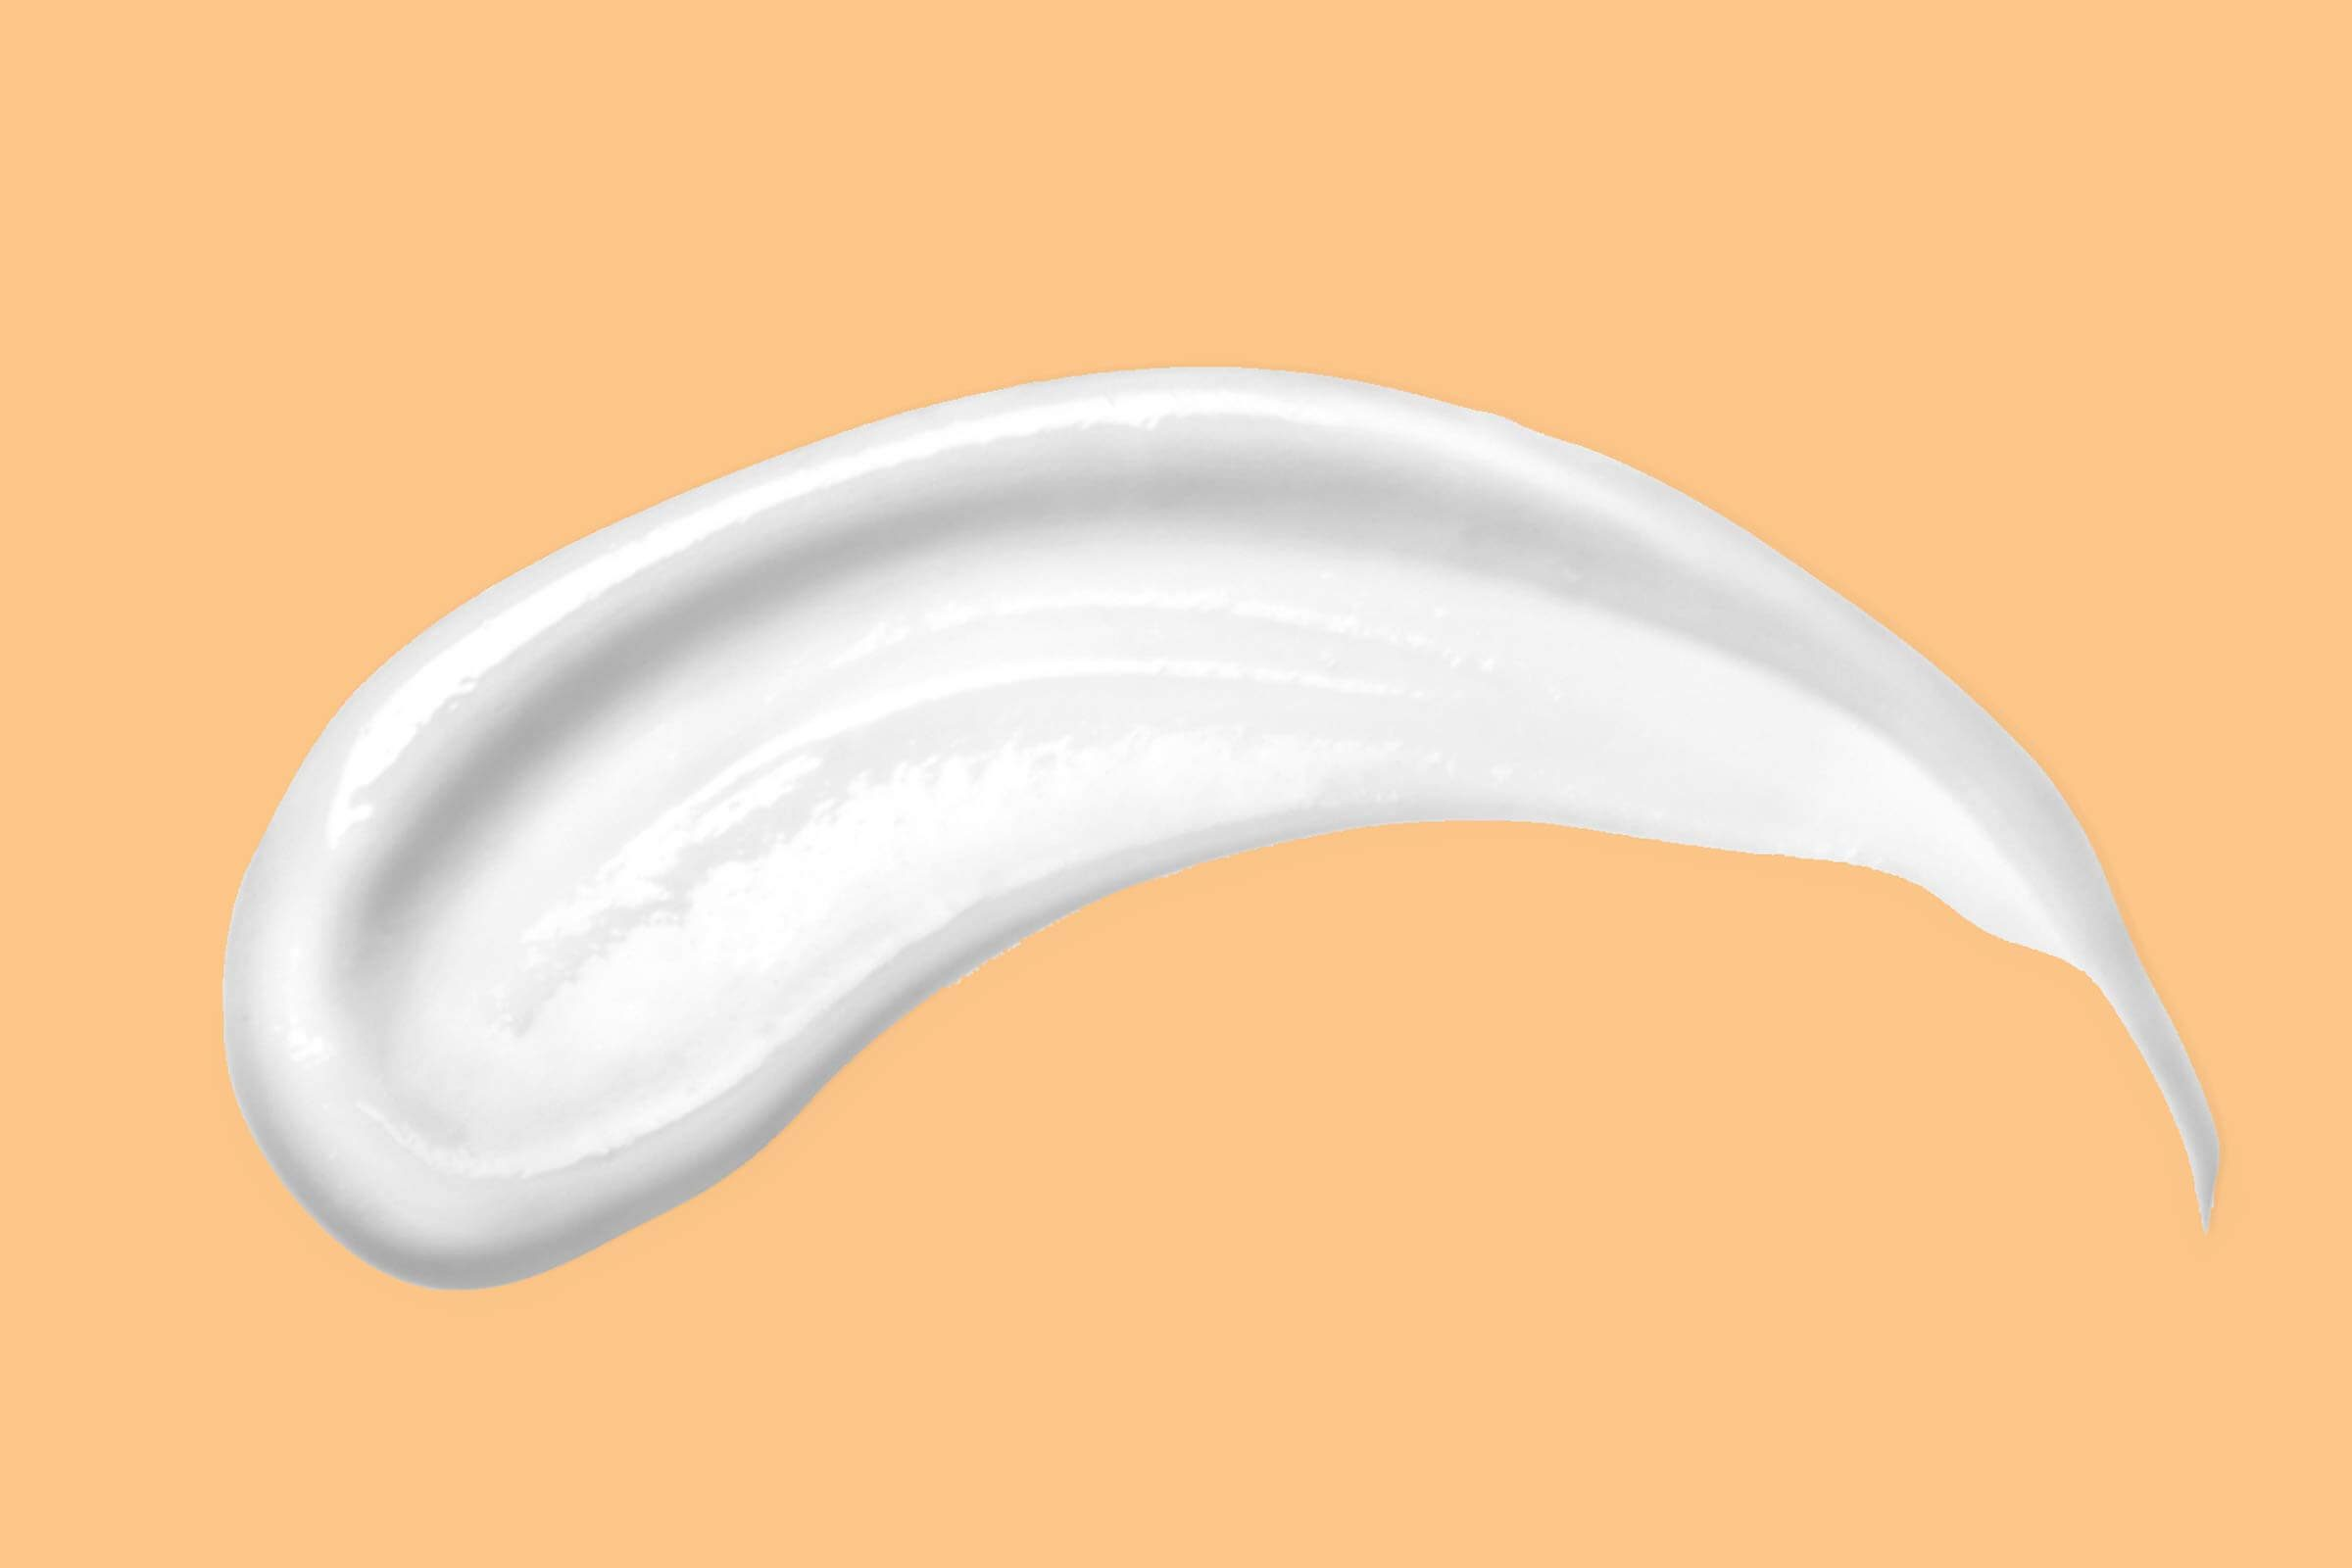 Revealed: These Are the Best Facial Moisturizers For Your Skin Type